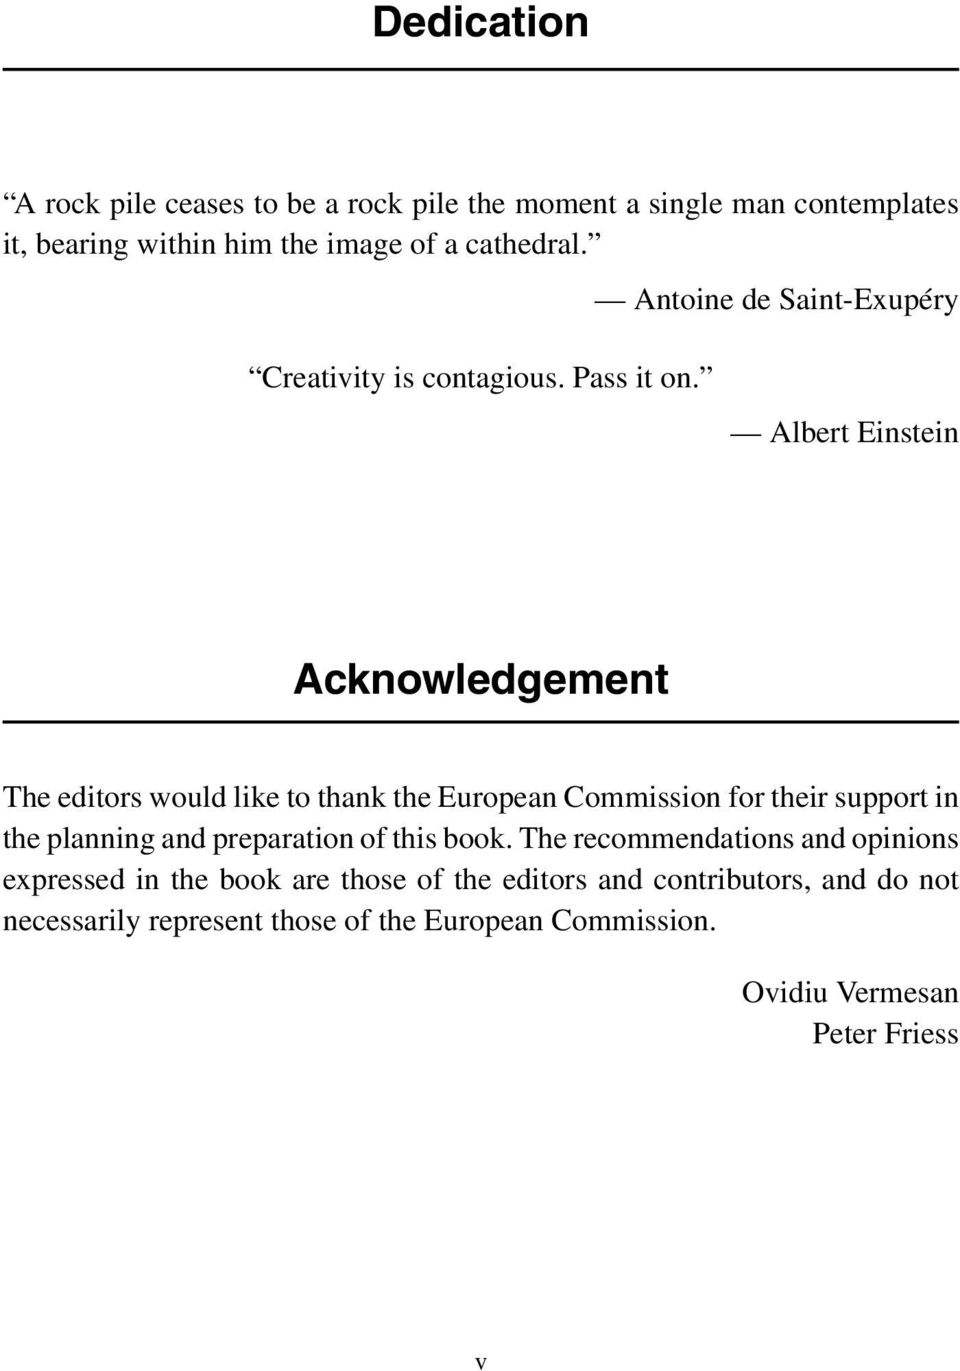 Albert Einstein Acknowledgement The editors would like to thank the European Commission for their support in the planning and